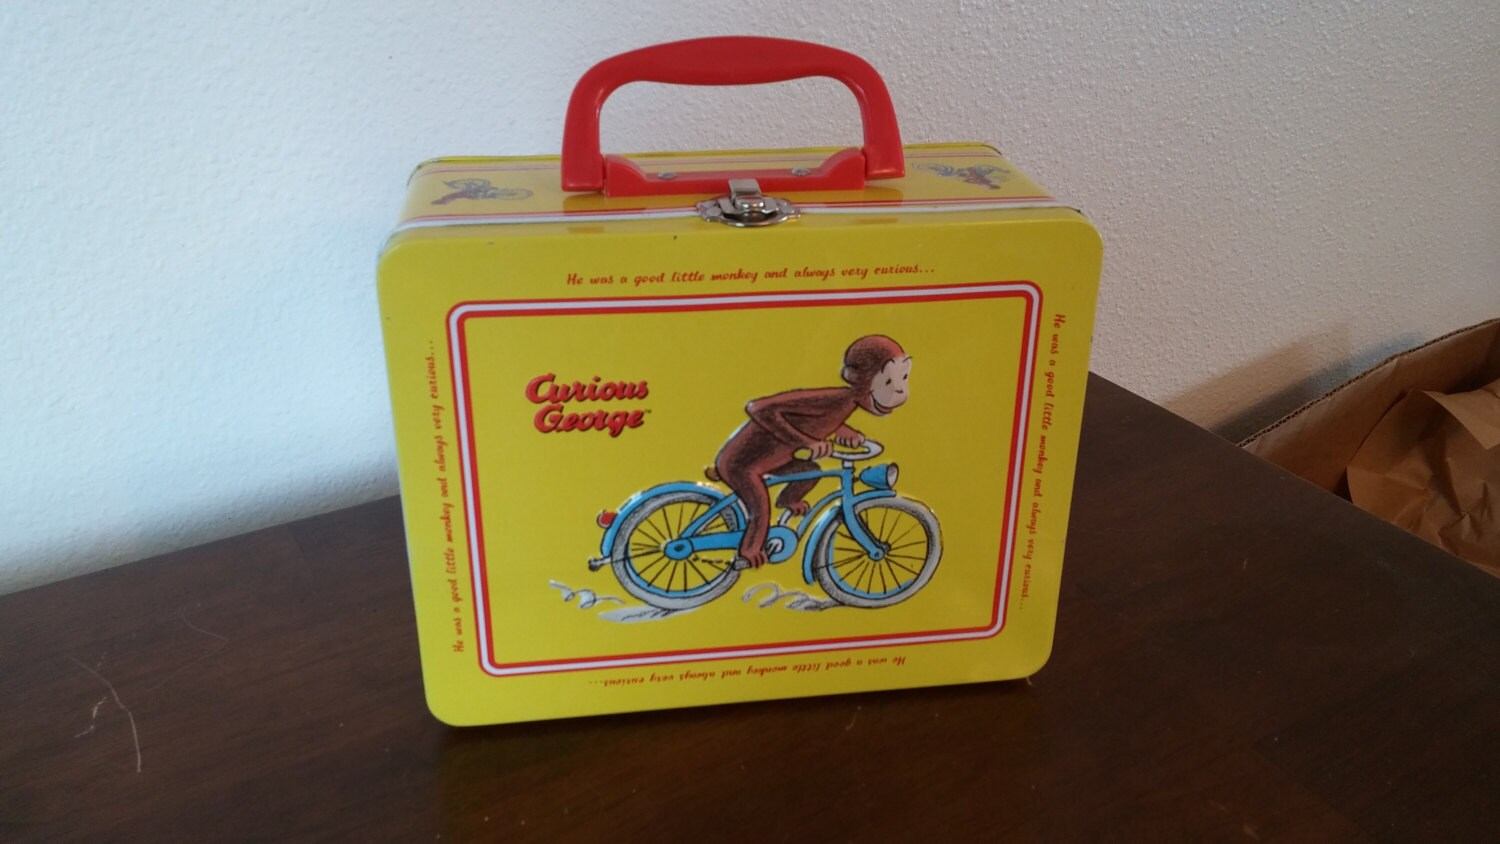 Decorative Box Lunches : Collectible metal curious george lunch box decorative tin with